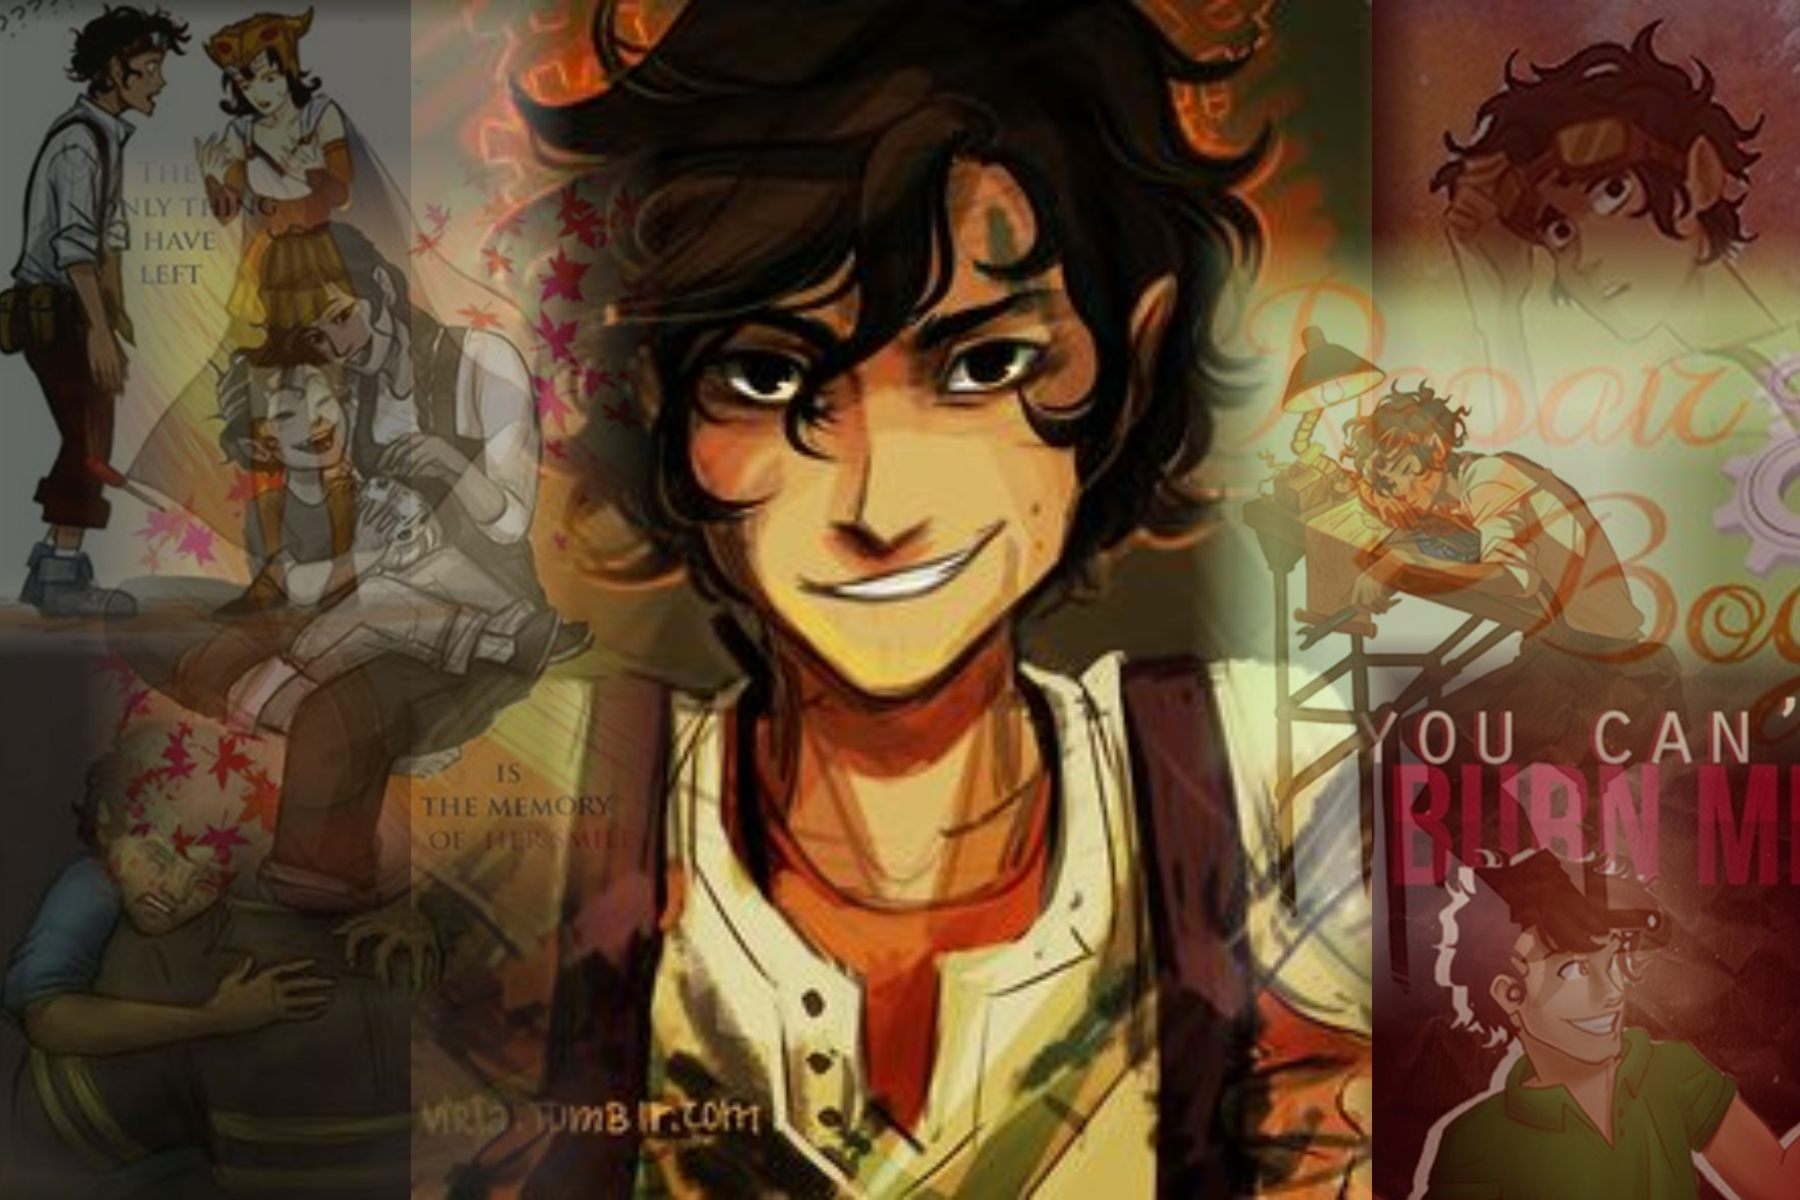 """Leo Valdez. """"you can't burn me."""" """"I try not to think. it interferes with being nuts."""" """"hello, hazel levesque."""" """"then we both lost our moms to fire."""" """"like me. I'm tragically funny and good-looking."""" """"I'm the super-sized McShizzle, man! I'm leo valdez, Bad Boy Supreme. and the ladies LOVE a bad boy."""" """"I swear it on the river styx."""" """"do not underestimate my ability to annoy."""" """"I GOT the scrawny."""" """"oh man, straight-up fighting isn't my thing."""" """"stupid. ugly. goat."""" """"I don't even LIKE star…"""